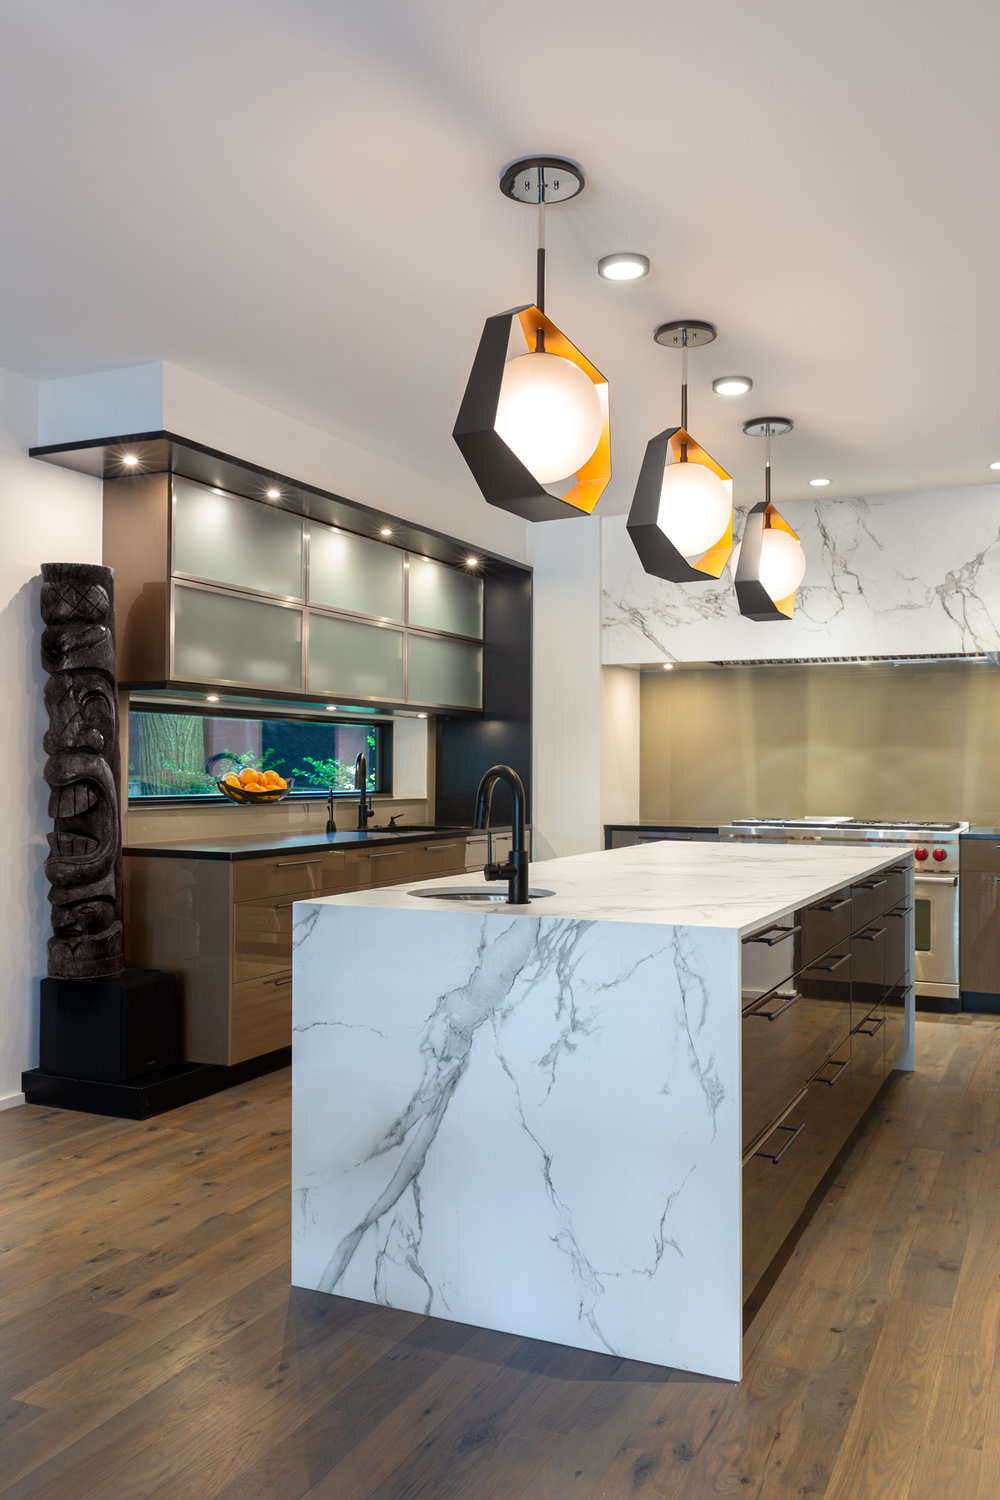 sq-kitchen-4.jpg